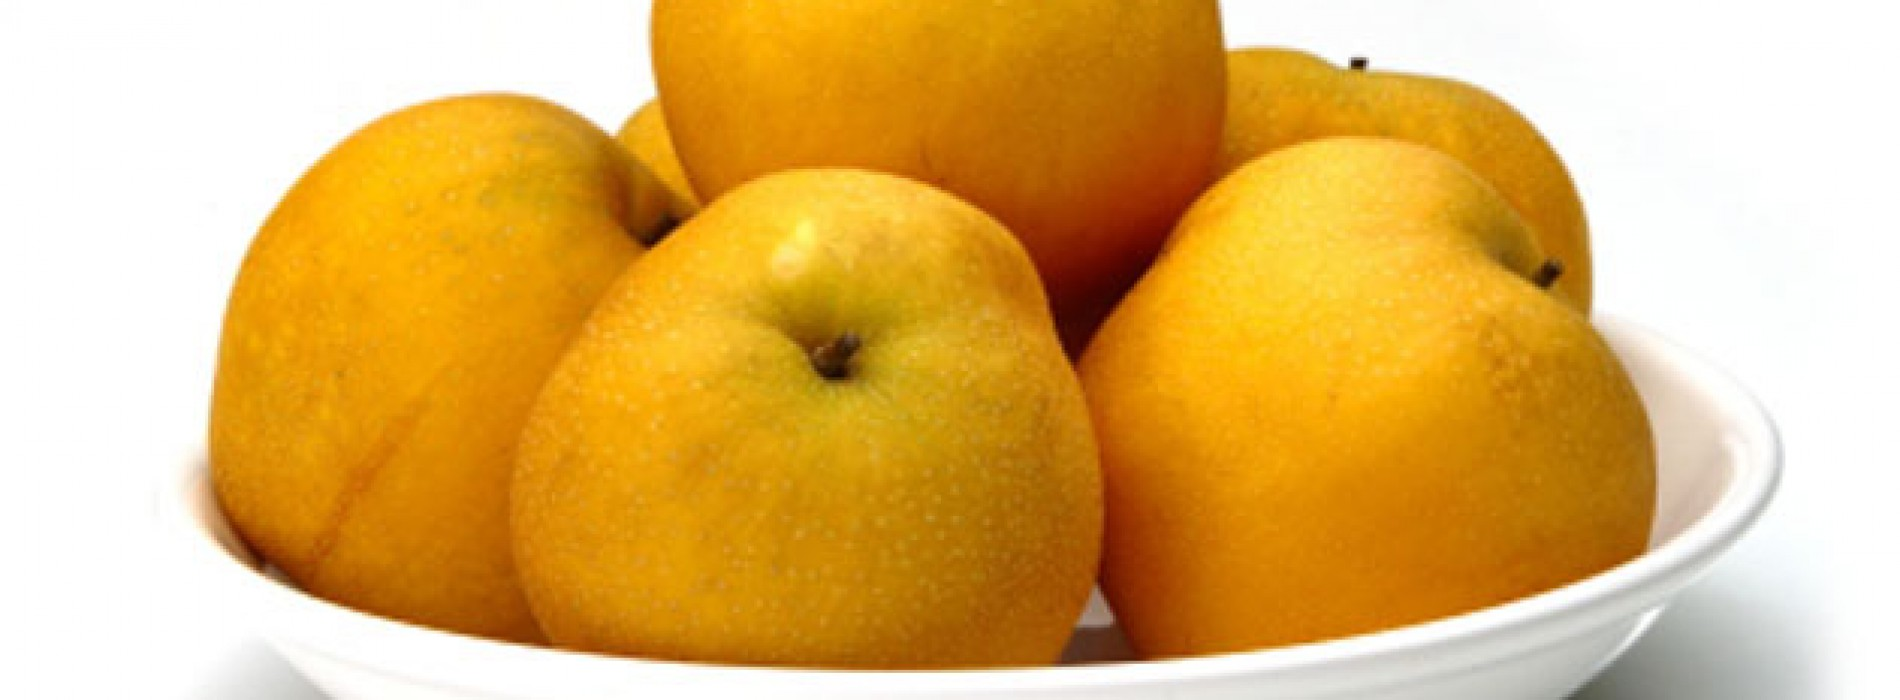 What's So Great About Asian Pears?